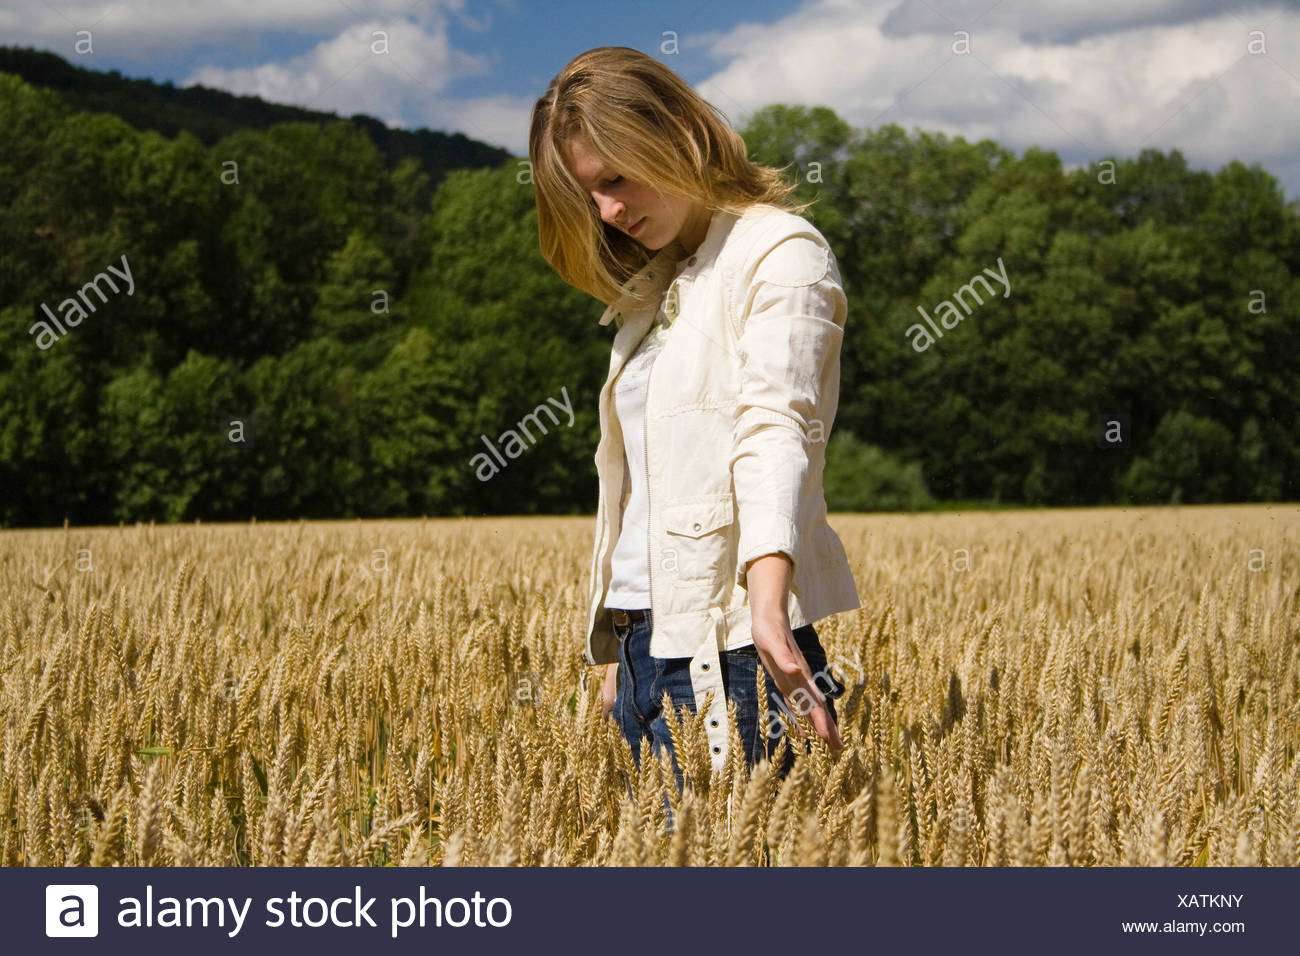 young woman grain field landscape humans nature Portrait summer thoughtful dream dreamed womanlike walk w - Stock Image